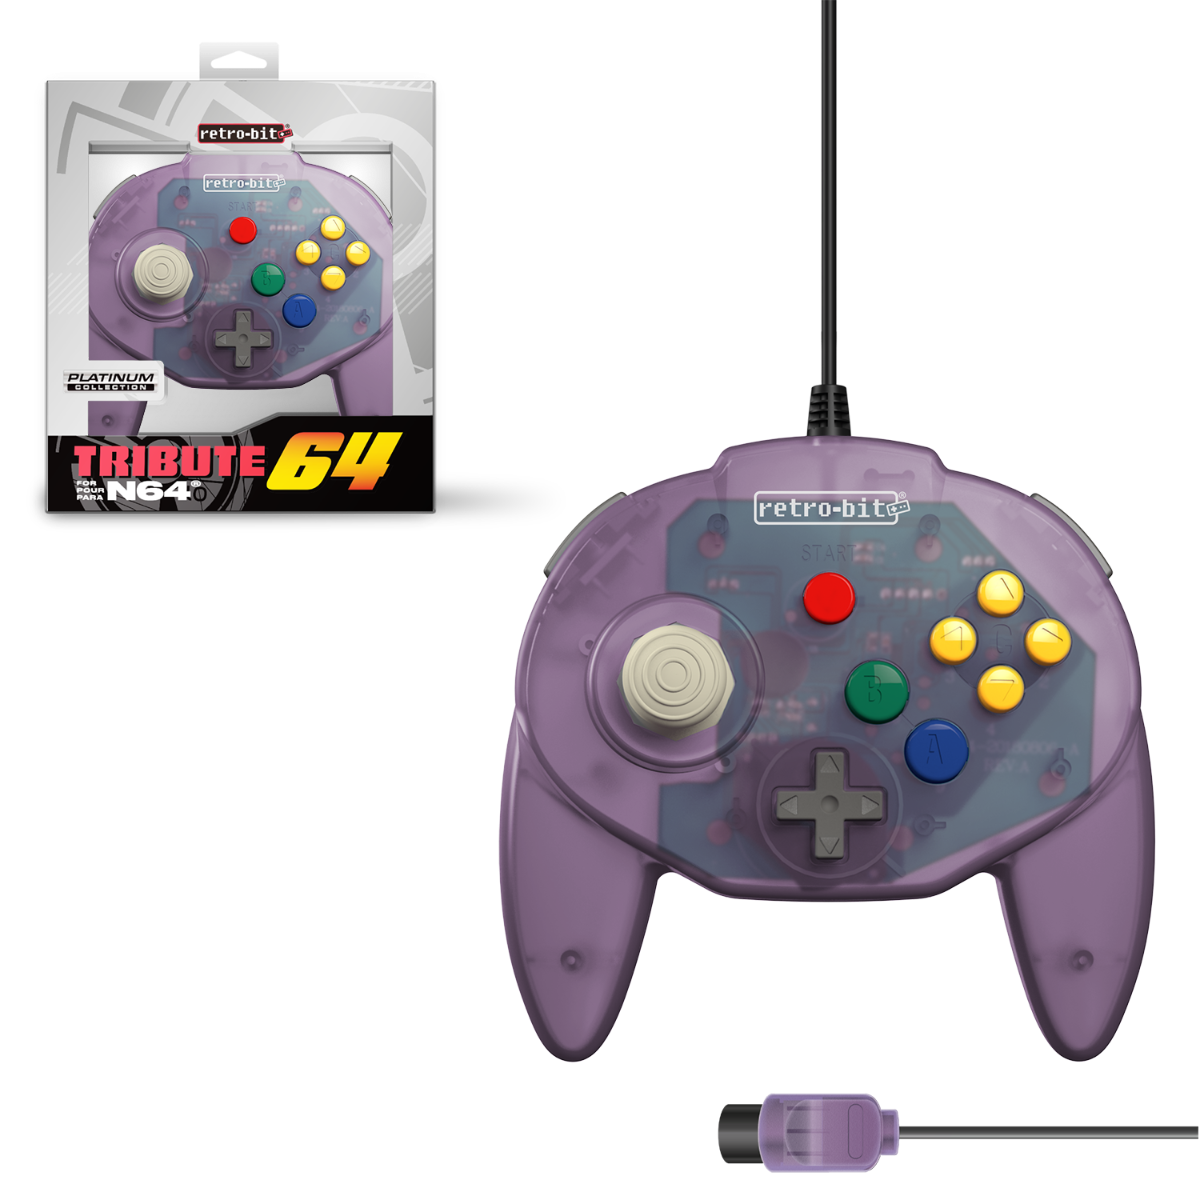 Tribute64 for N64 - Atomic Purple